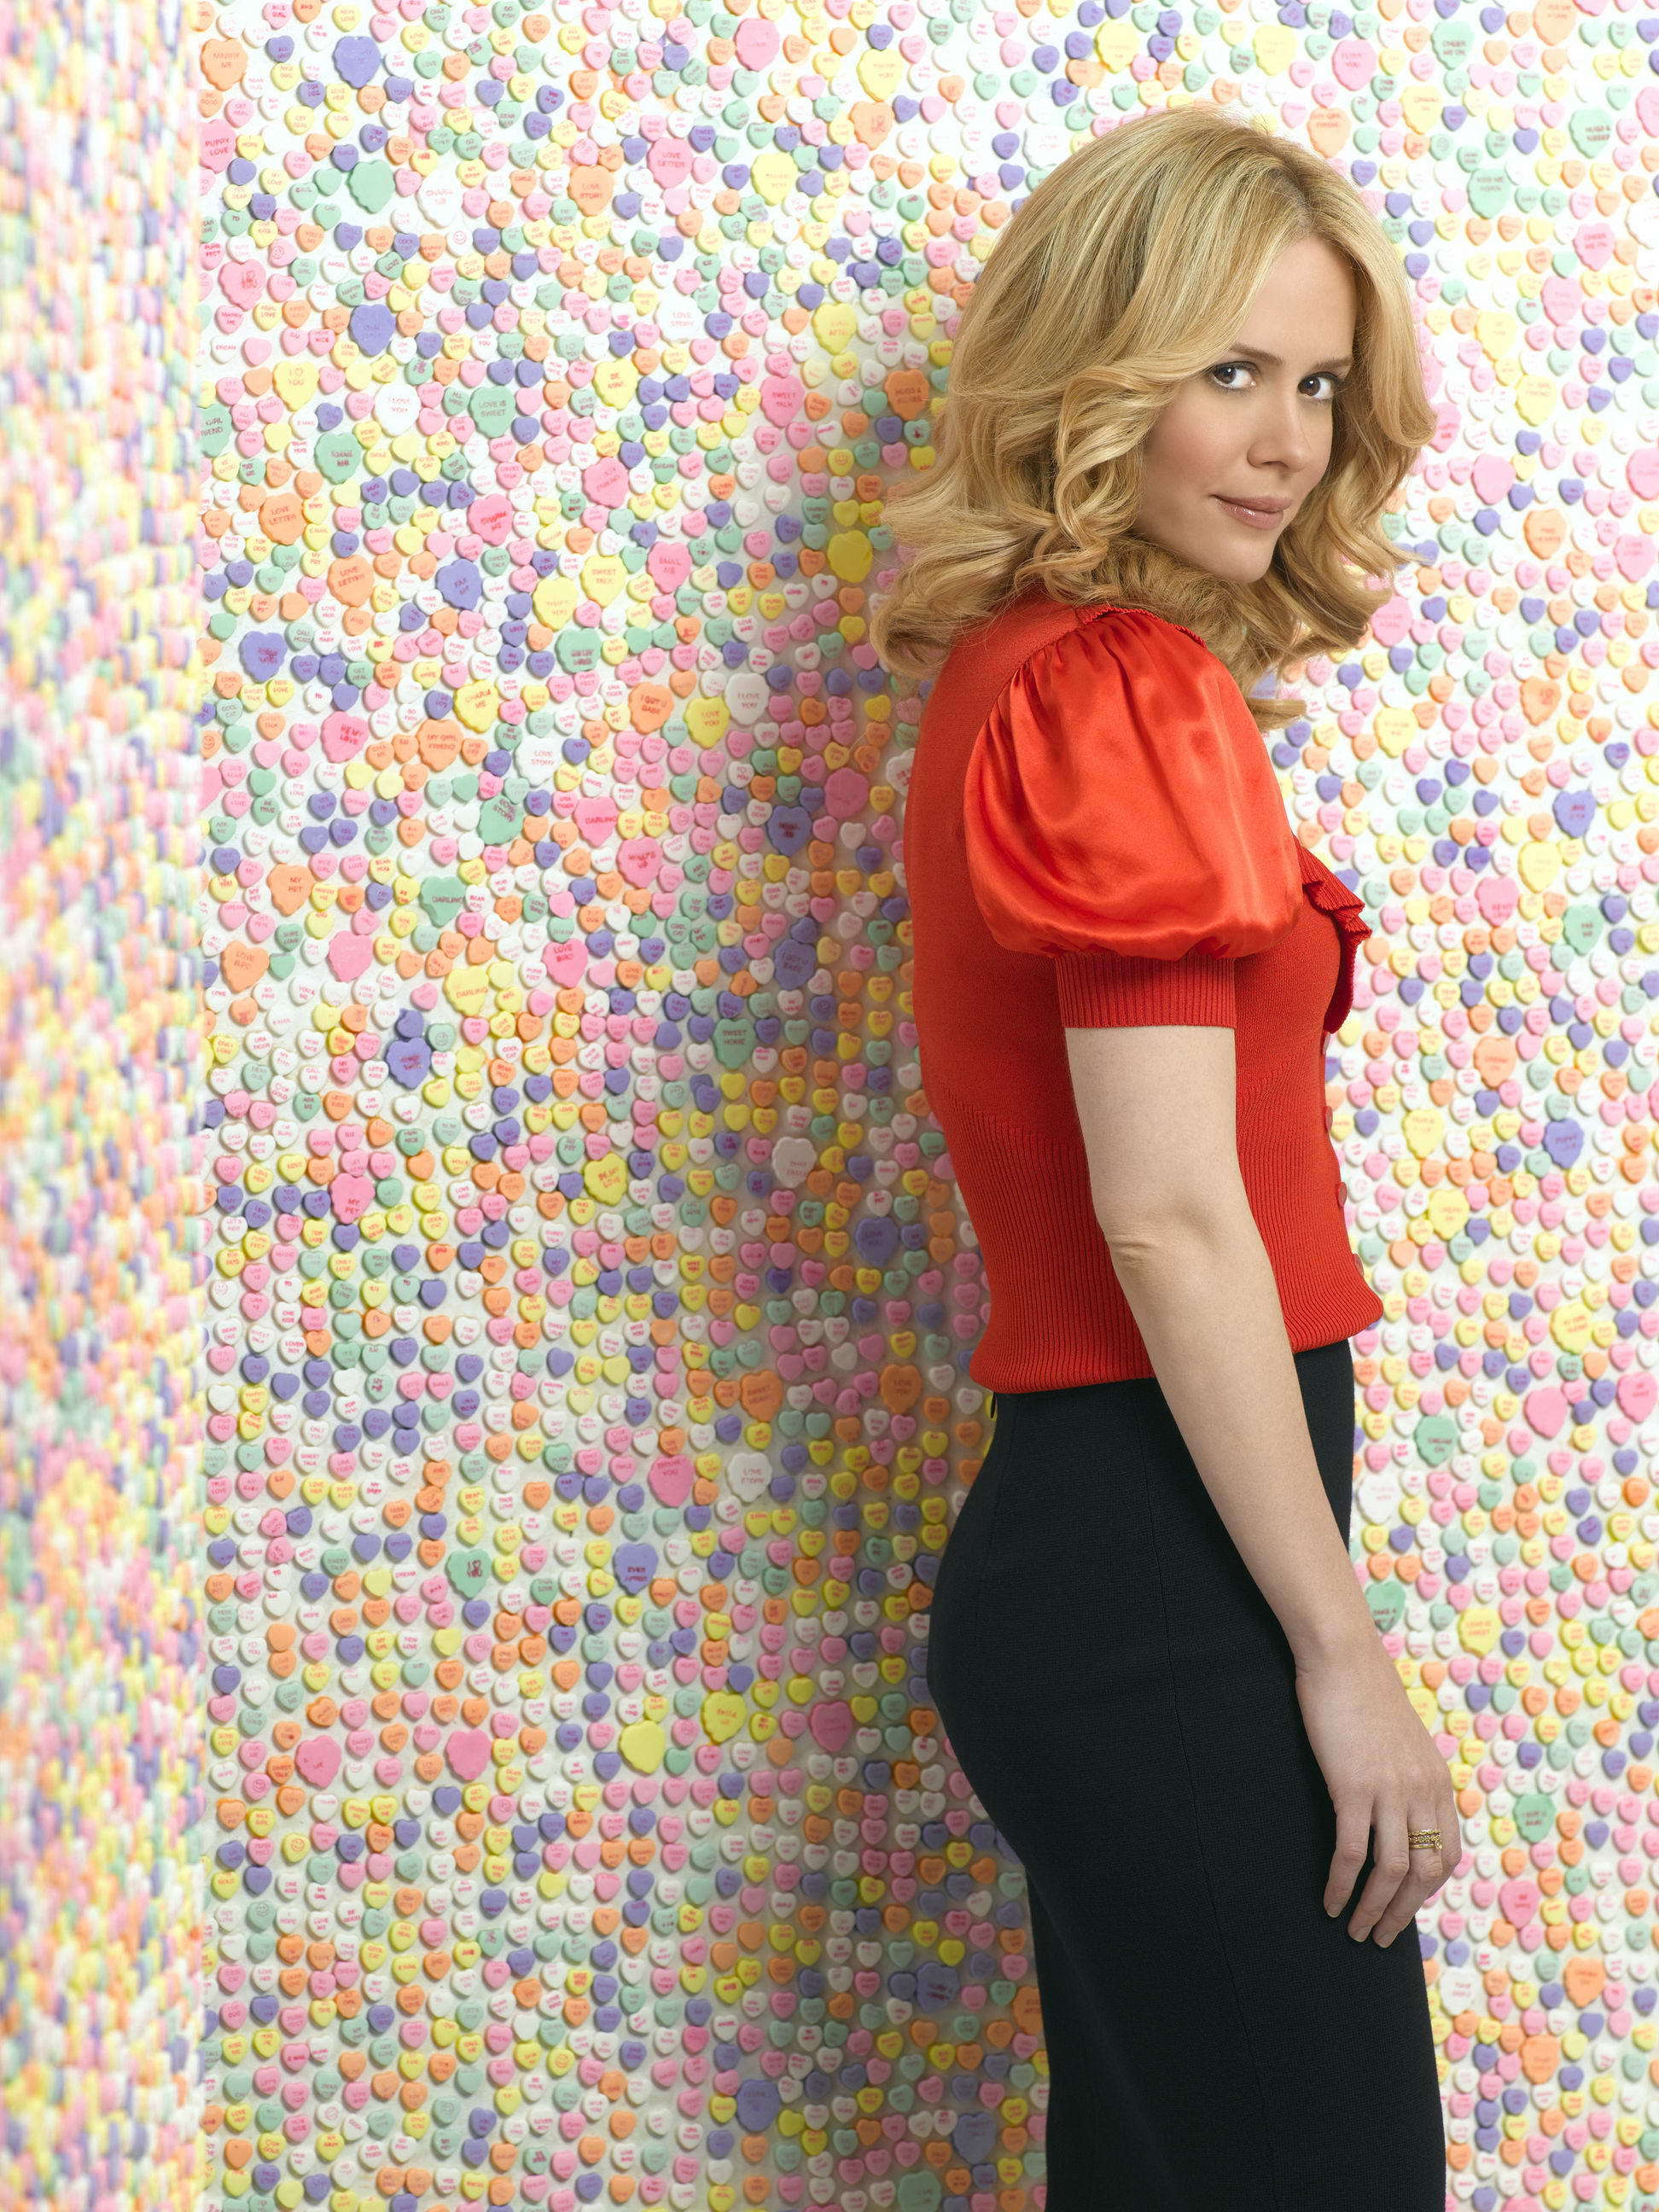 Sarah Paulson High Quality Wallpapers For Iphone